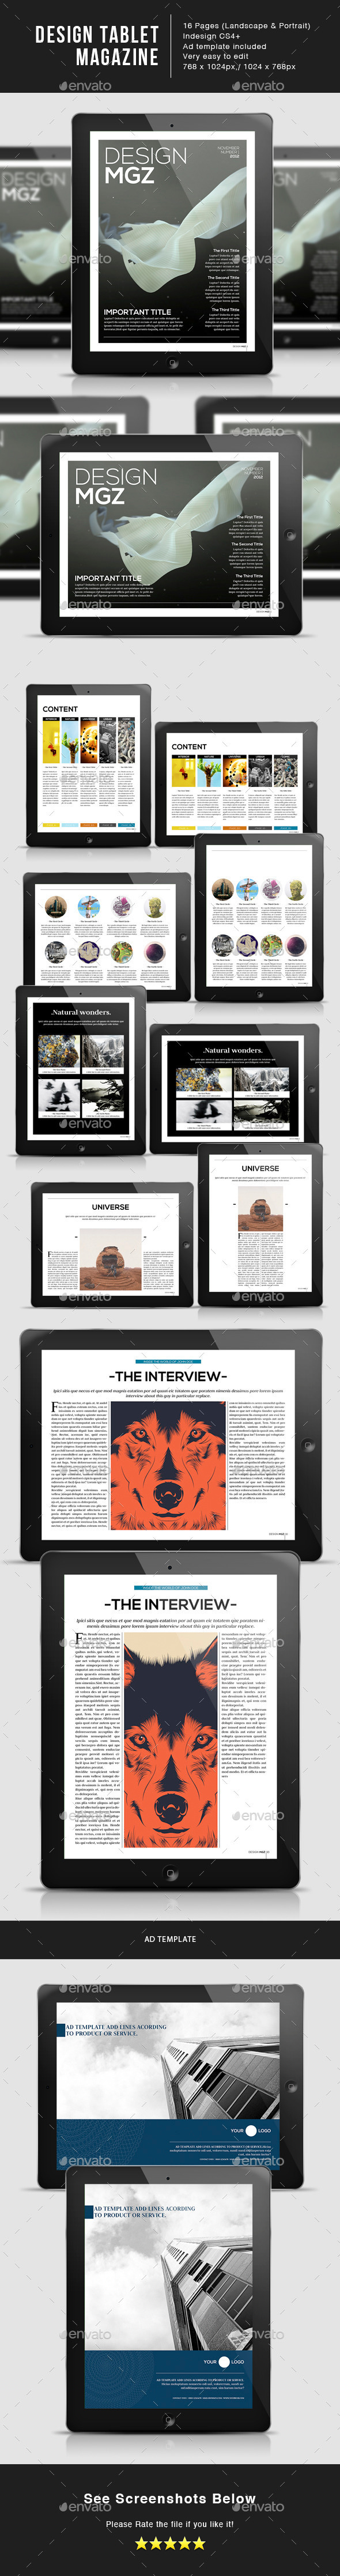 Design Magazine 1 for Tablet - Digital Magazines ePublishing